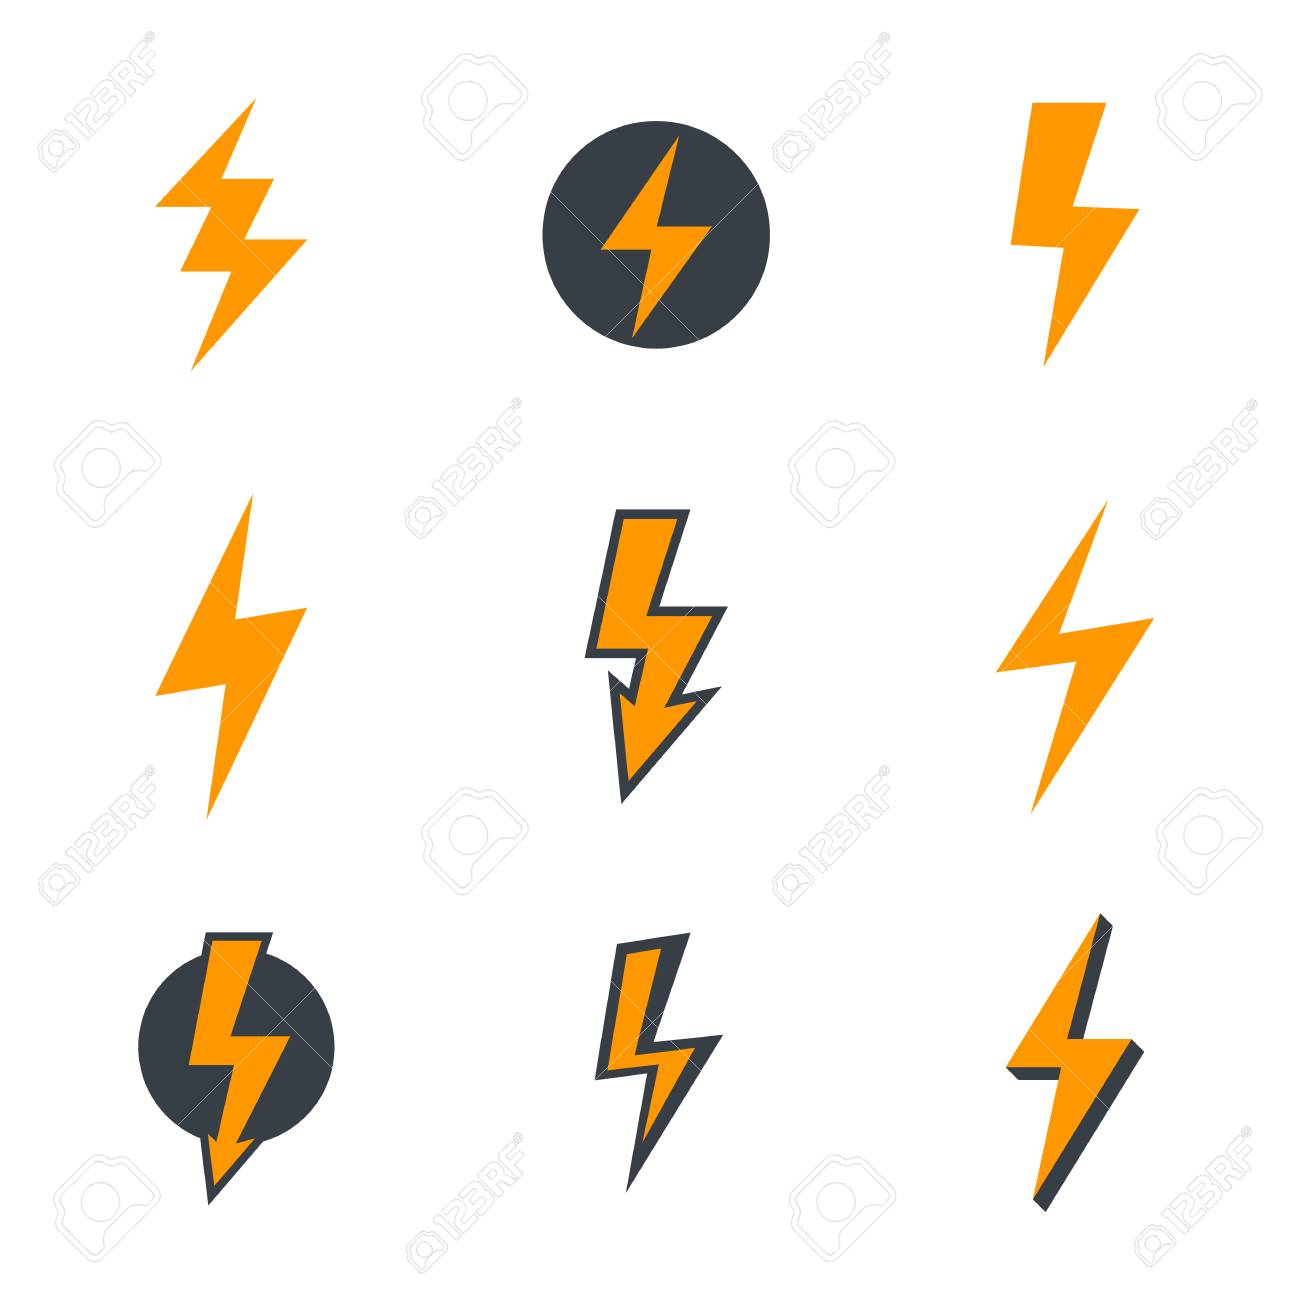 23 Lightning Bolt, Electricity, Warning Signs Royalty Free Cliparts ...